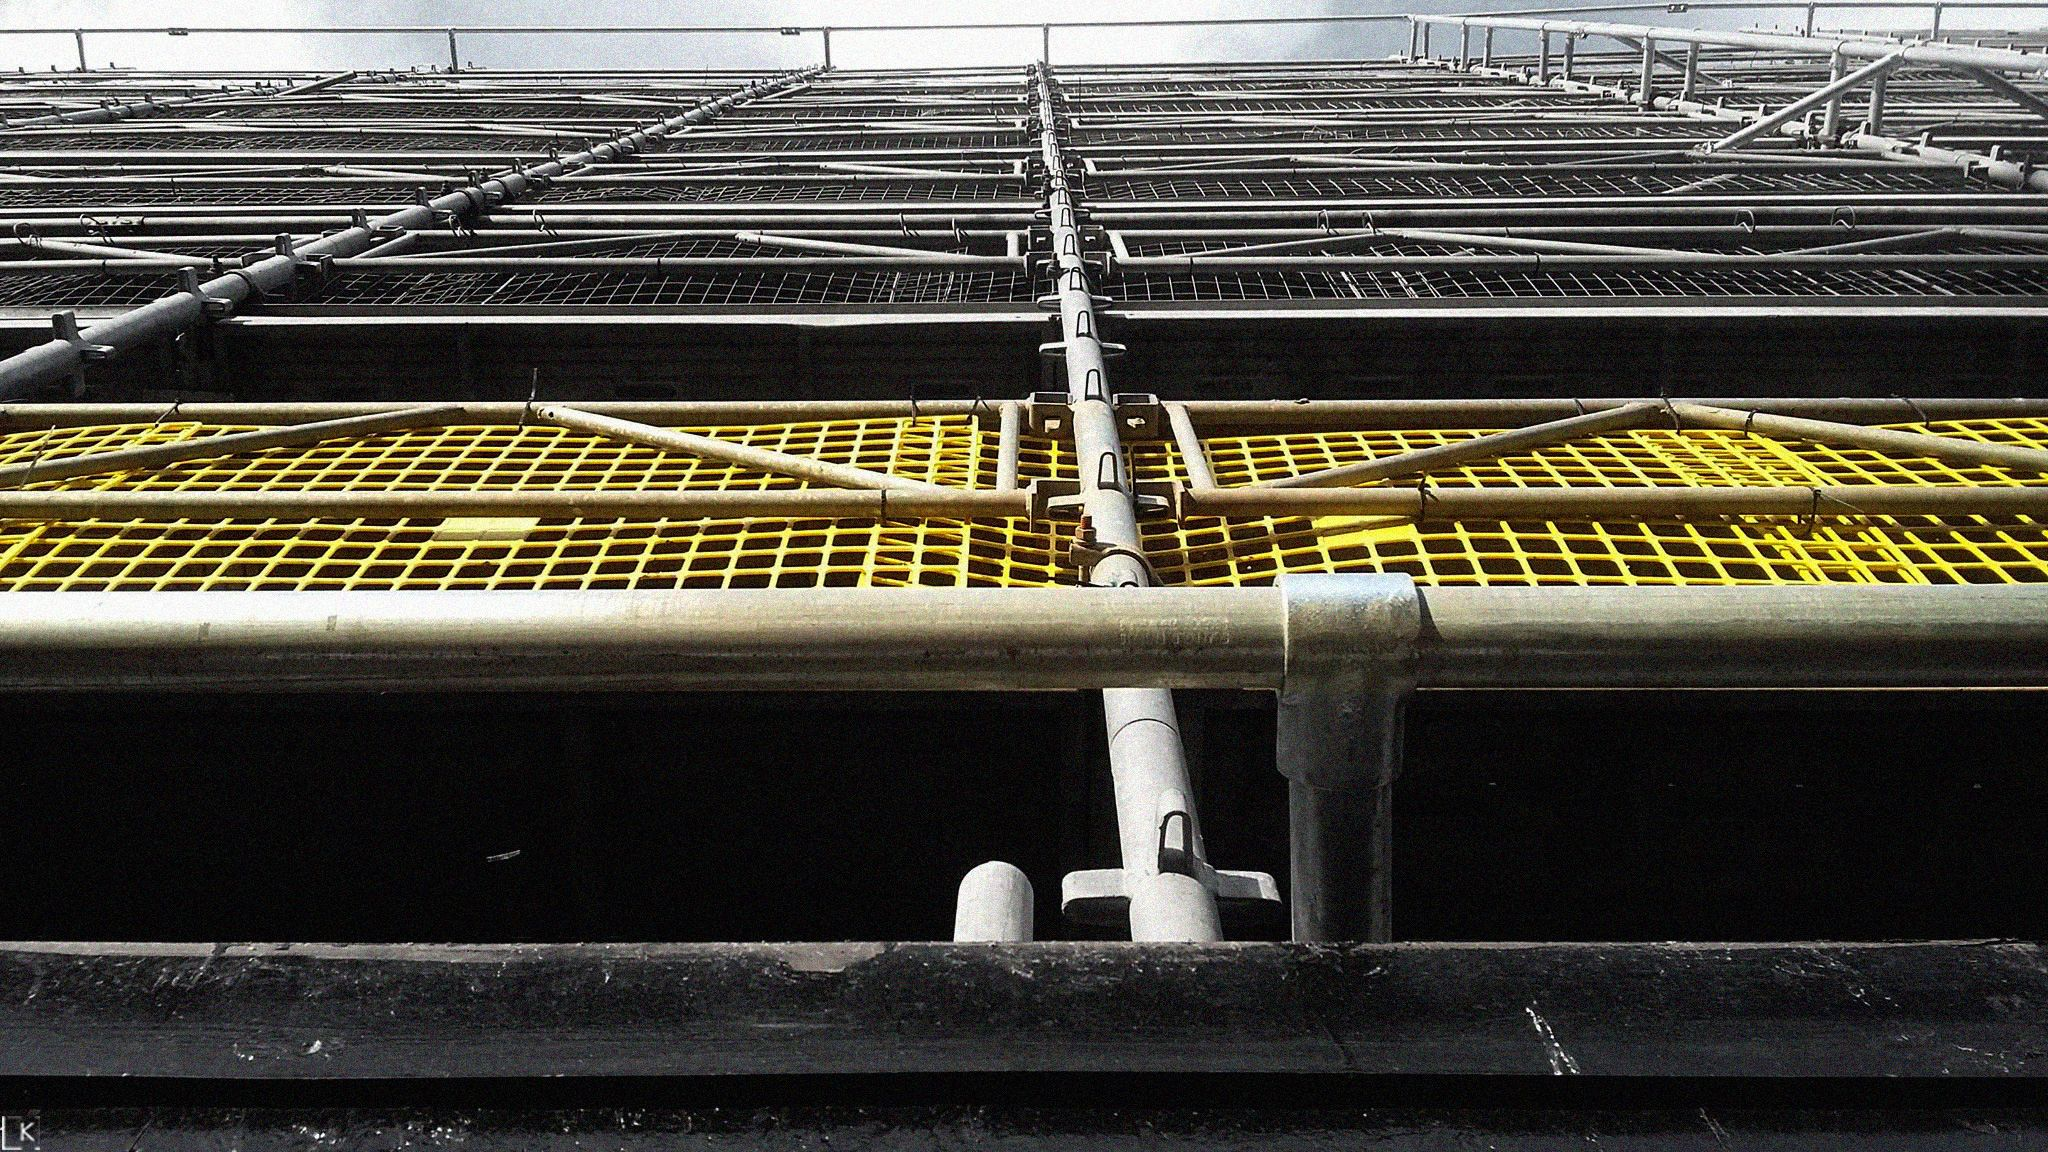 Urban Yellow Edinburgh Urban Yellow Princes Street Edinburgh Scotland Building Construction Yellow Yellow Construc Photo And Video Instagram Grayscale